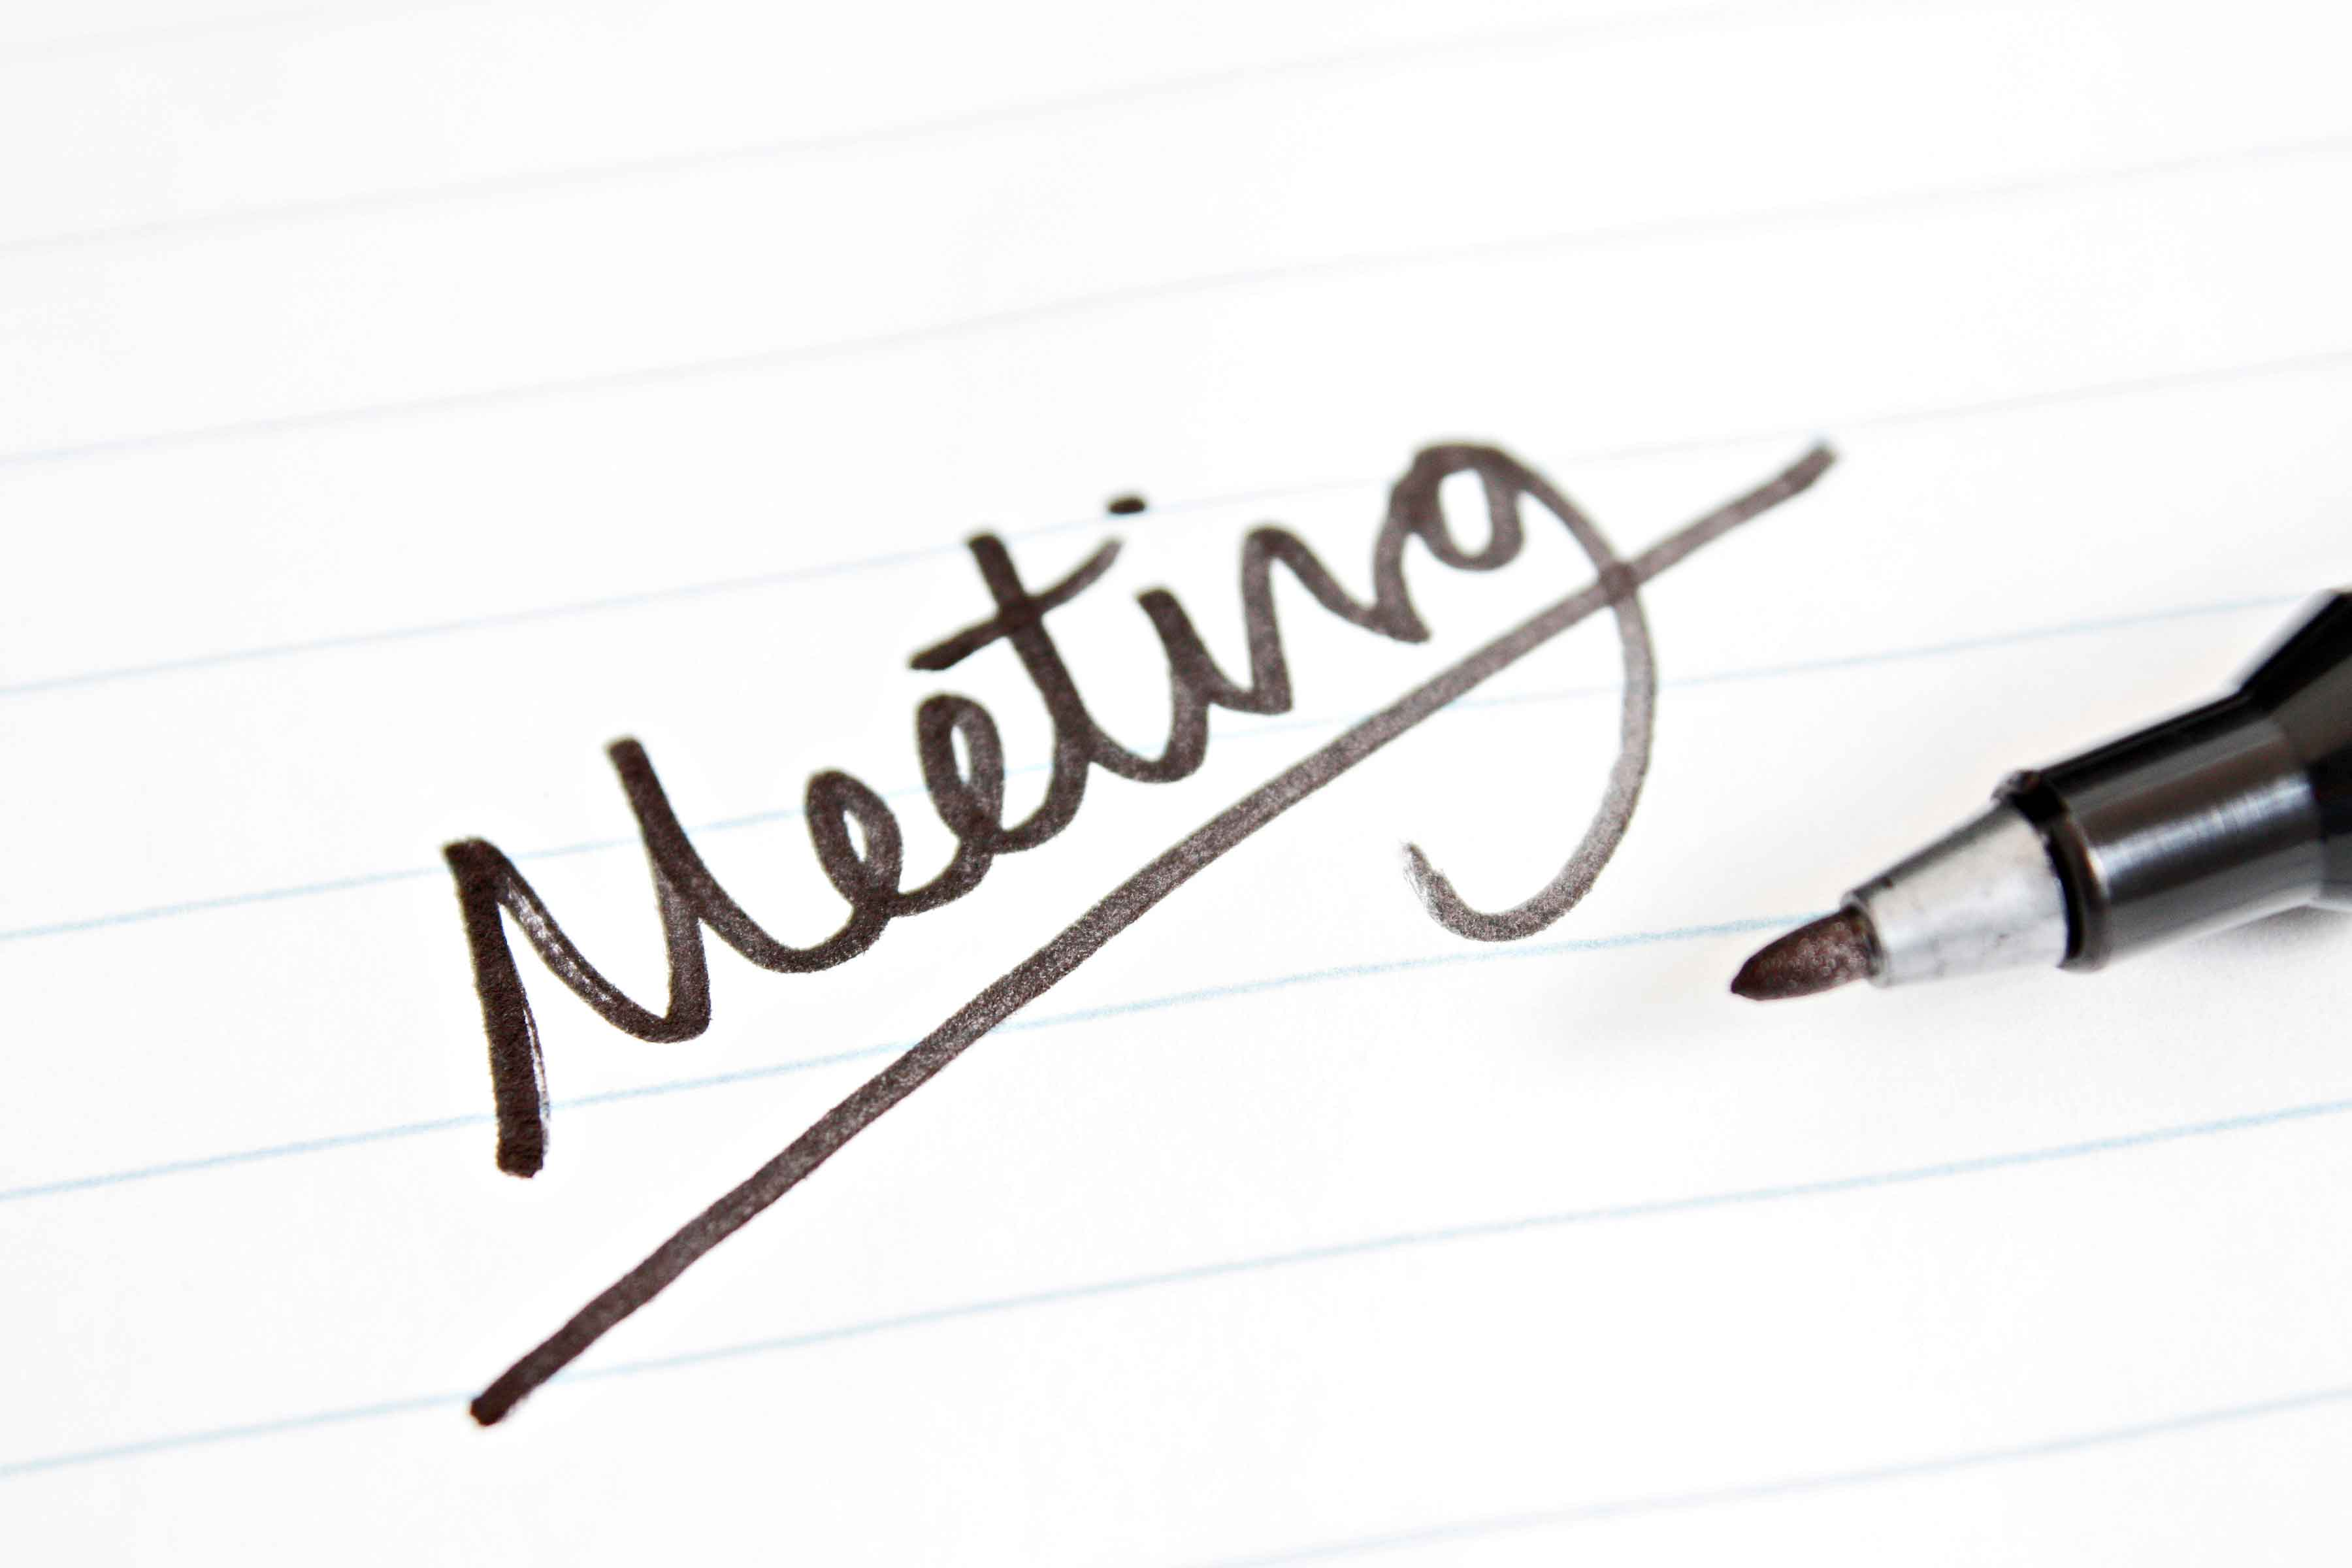 The word meeting scrawled on a piece of paper with a black pen beside it.